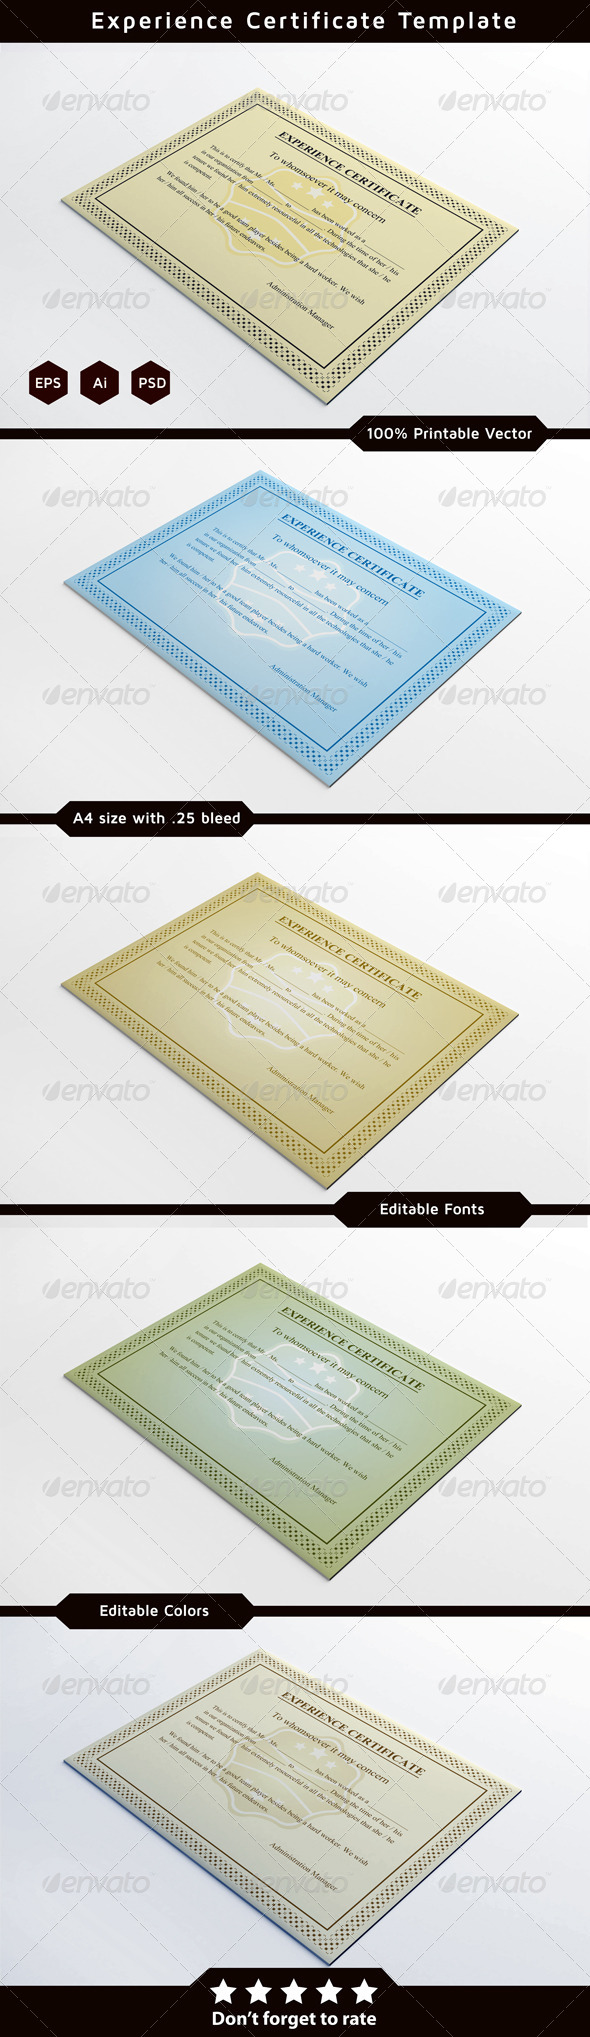 Experience Certificates - Certificates Stationery